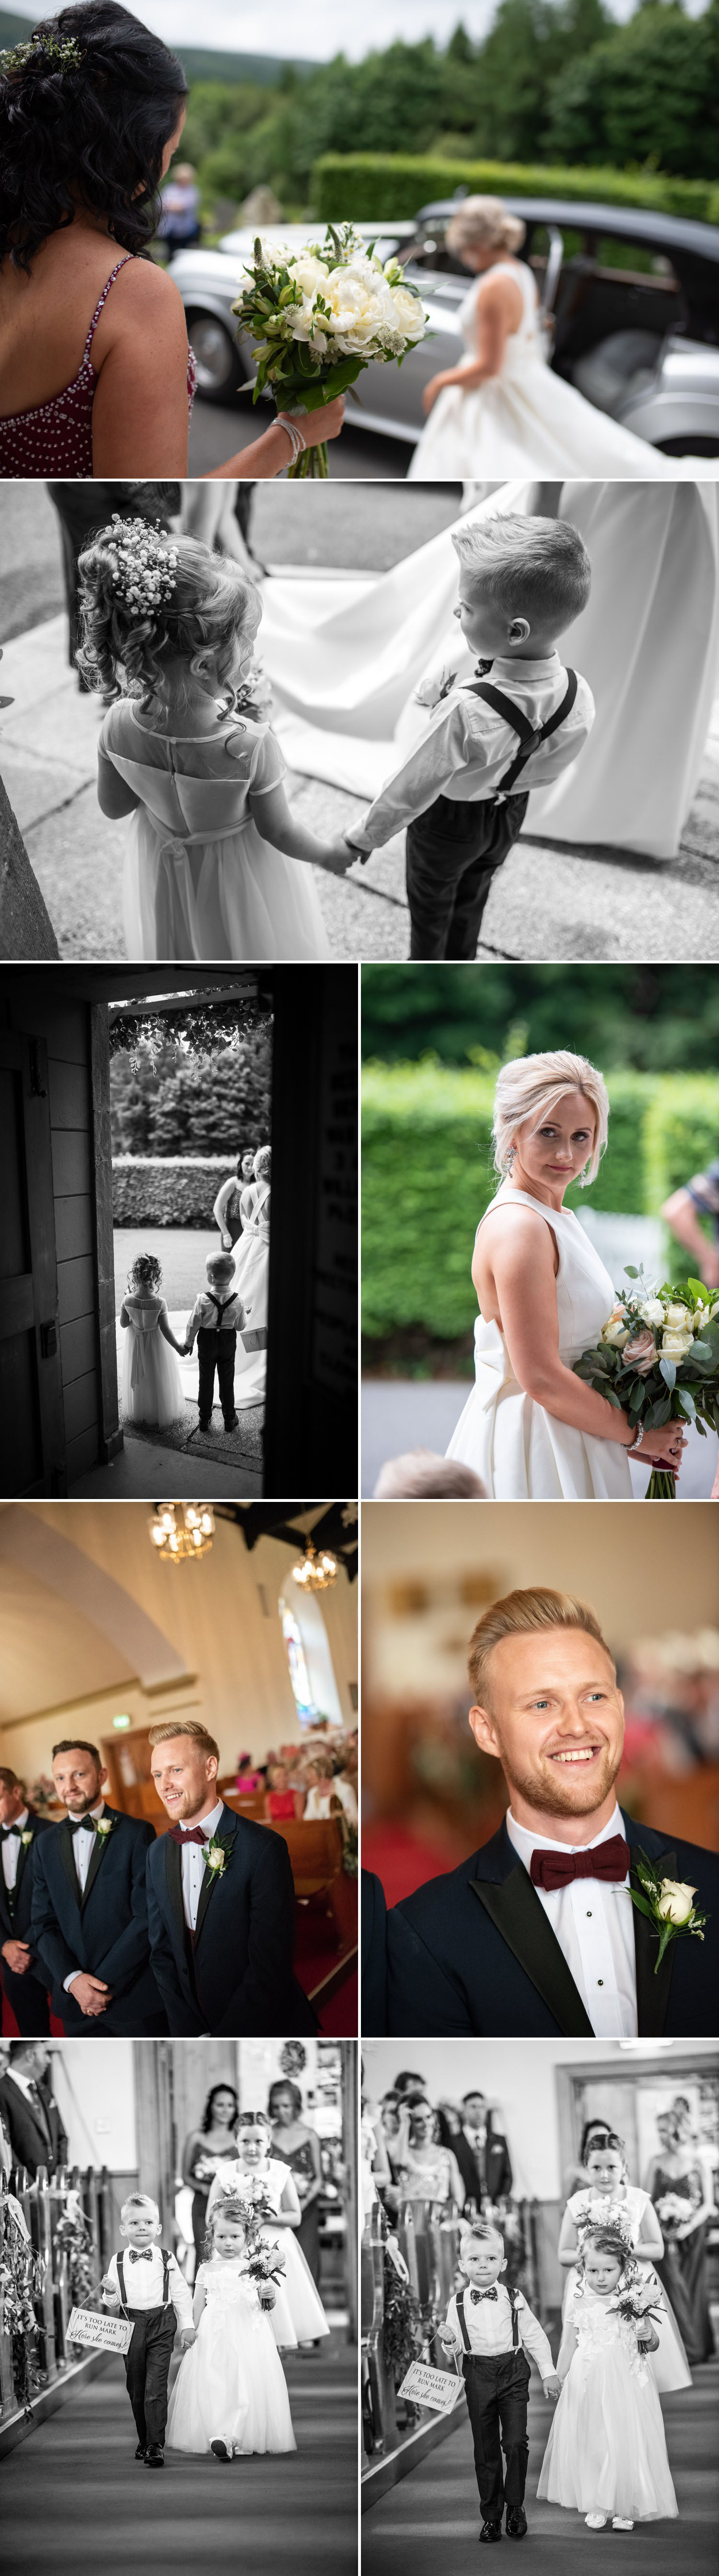 best wedding photographers northern ireland 06.jpg